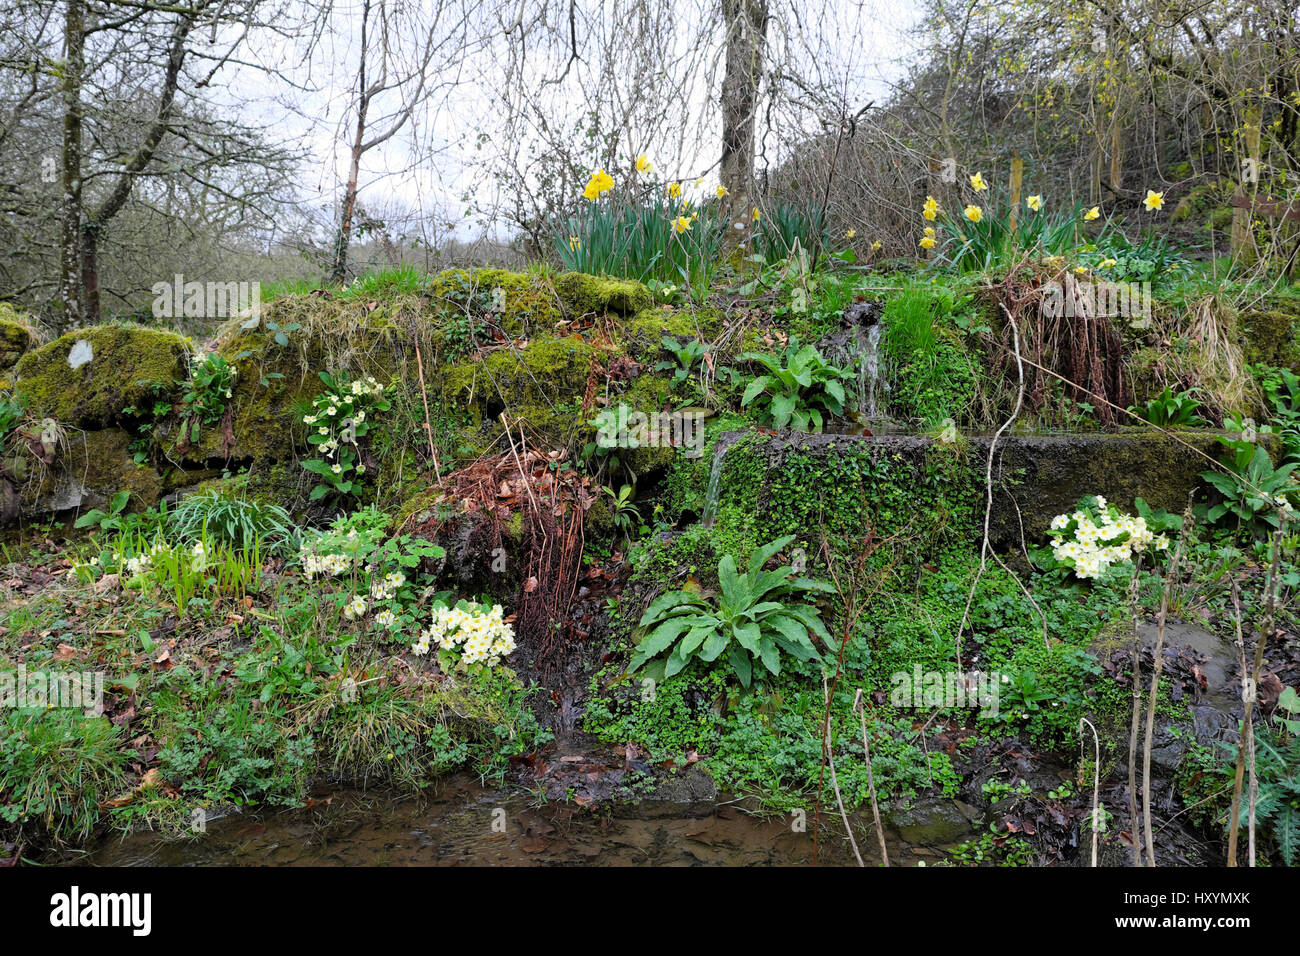 Rock garden in spring with water trough, ferns, polyanthus, daffodils in  Carmarthenshire Wales UK  KATHY DEWITT - Stock Image